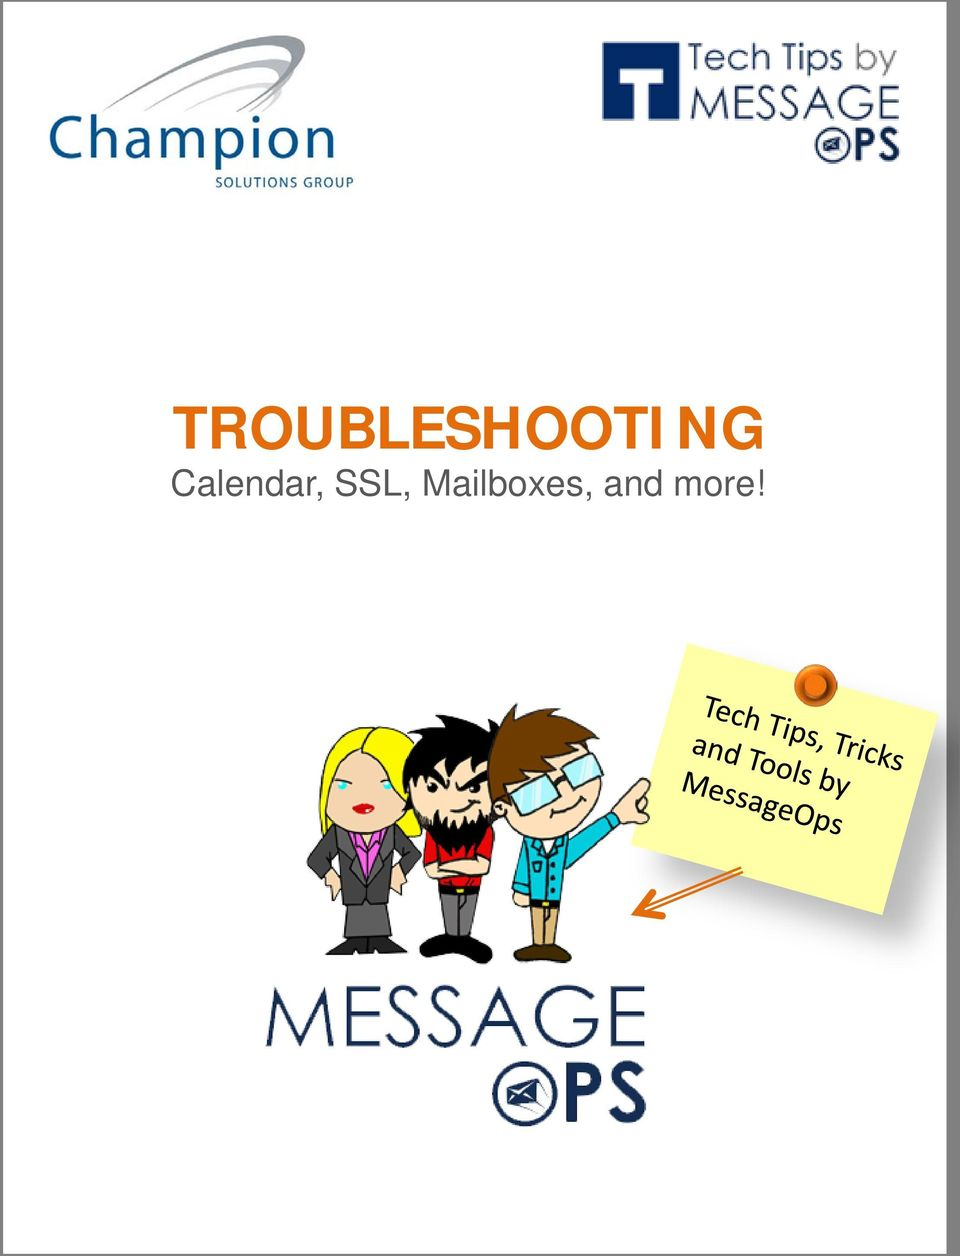 TROUBLESHOOTING  Calendar, SSL, Mailboxes, and more! - PDF